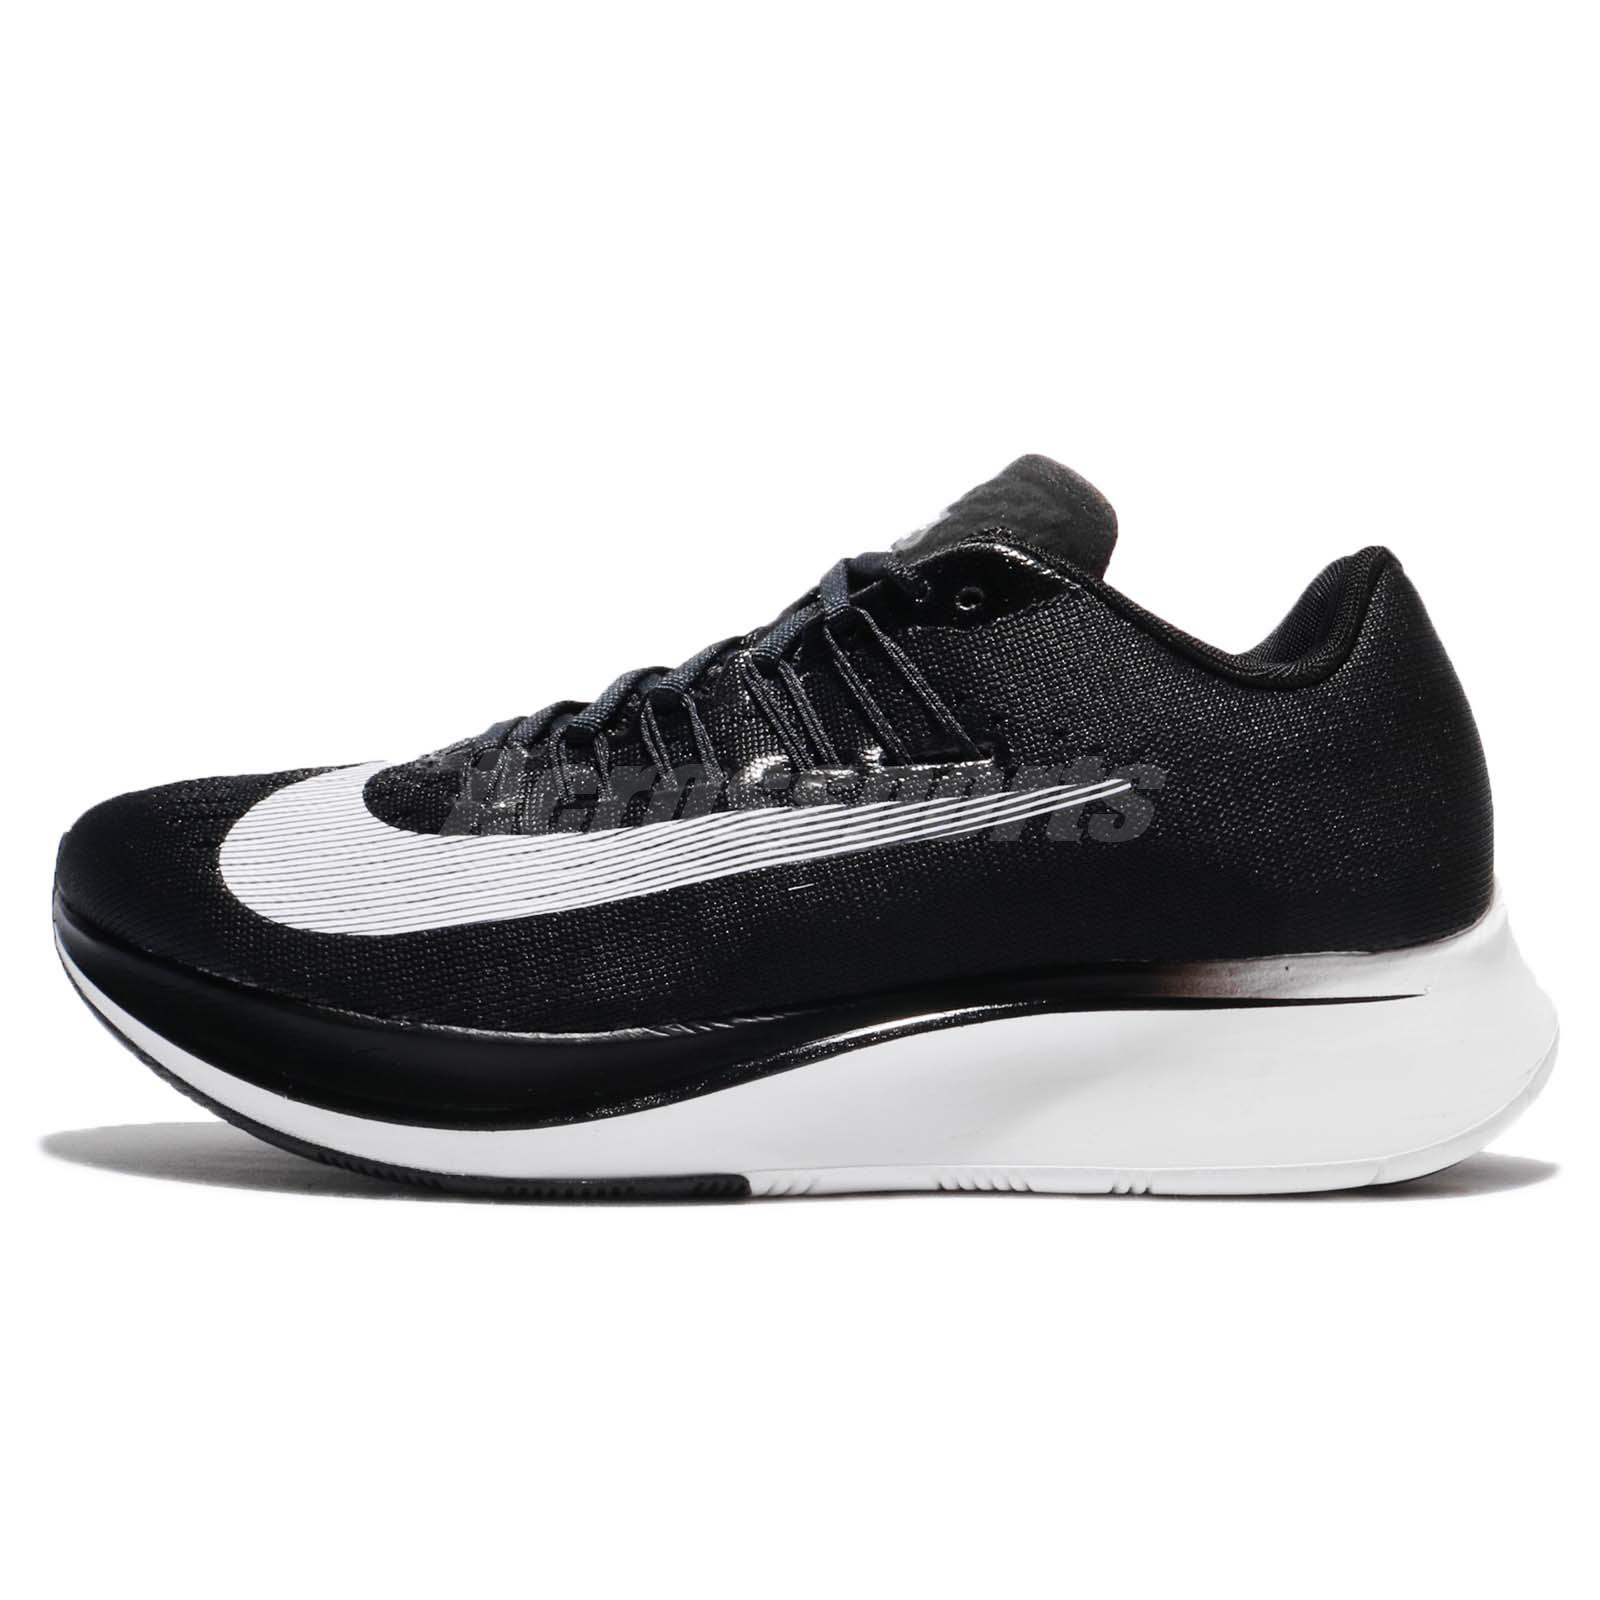 Wmns Nike Zoom Fly Black White Women Running Shoes Sneakers Trainers 897821001